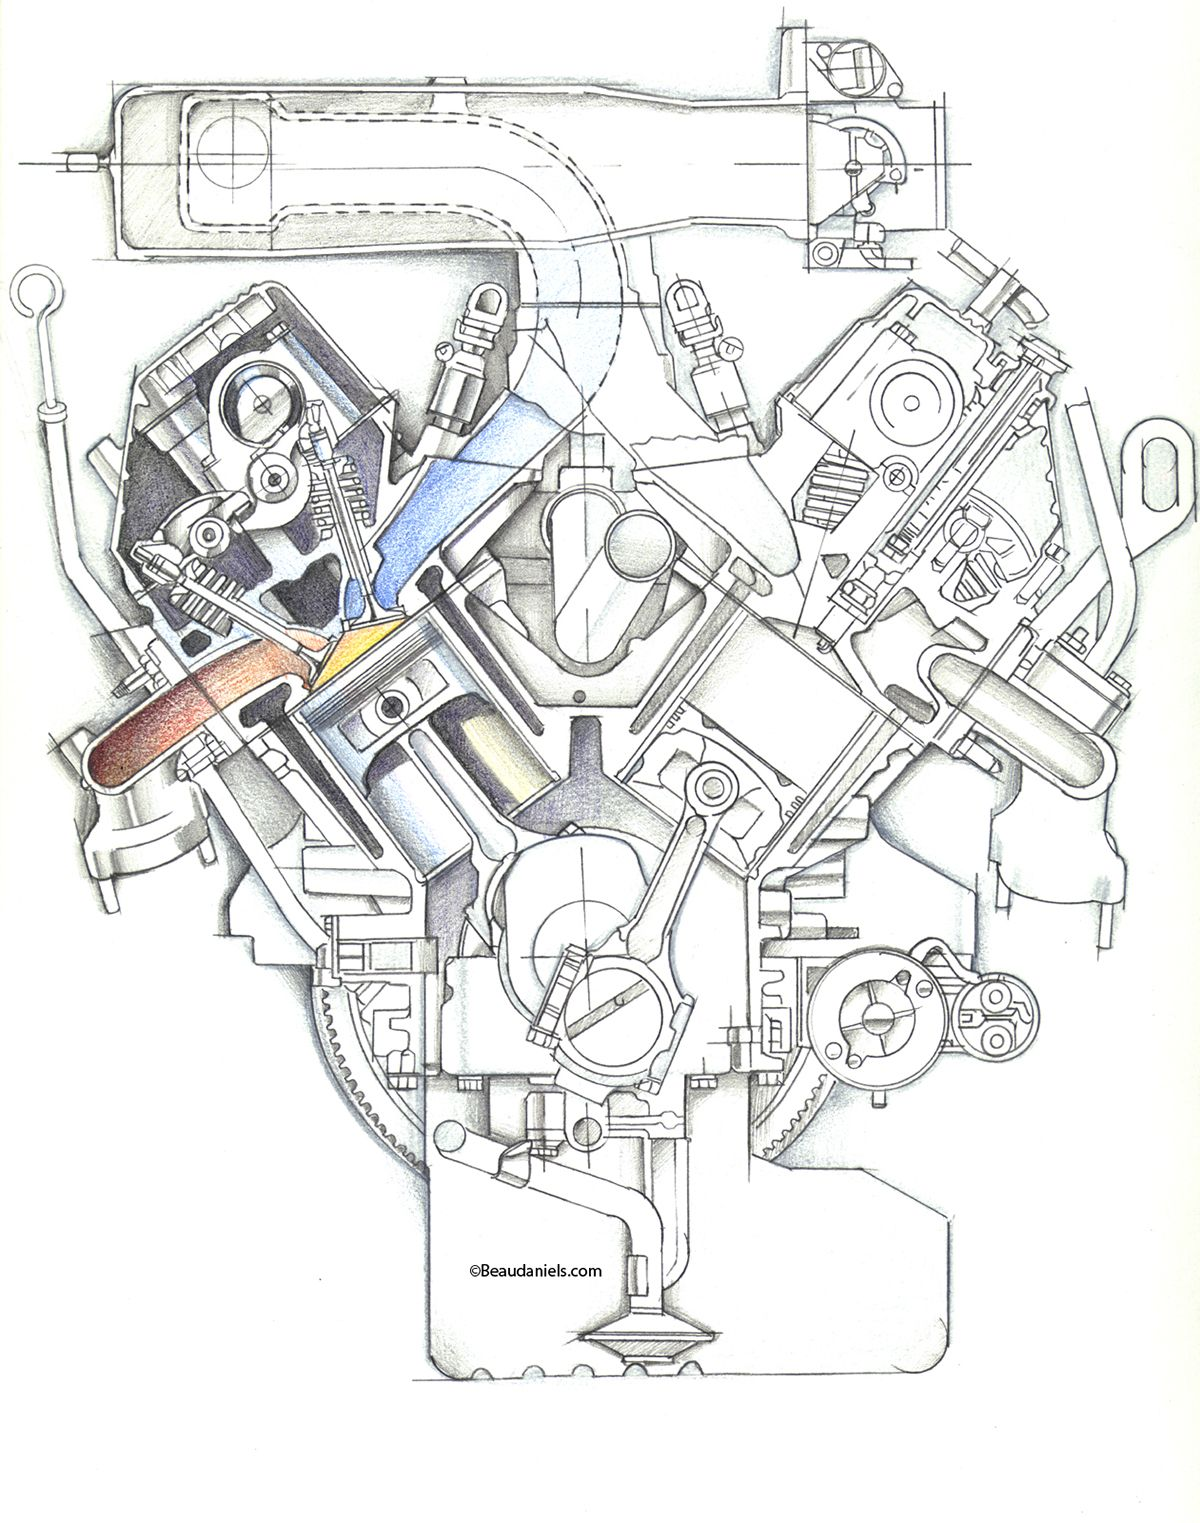 Cutaway Automotive Engines On Behance Design Drawing